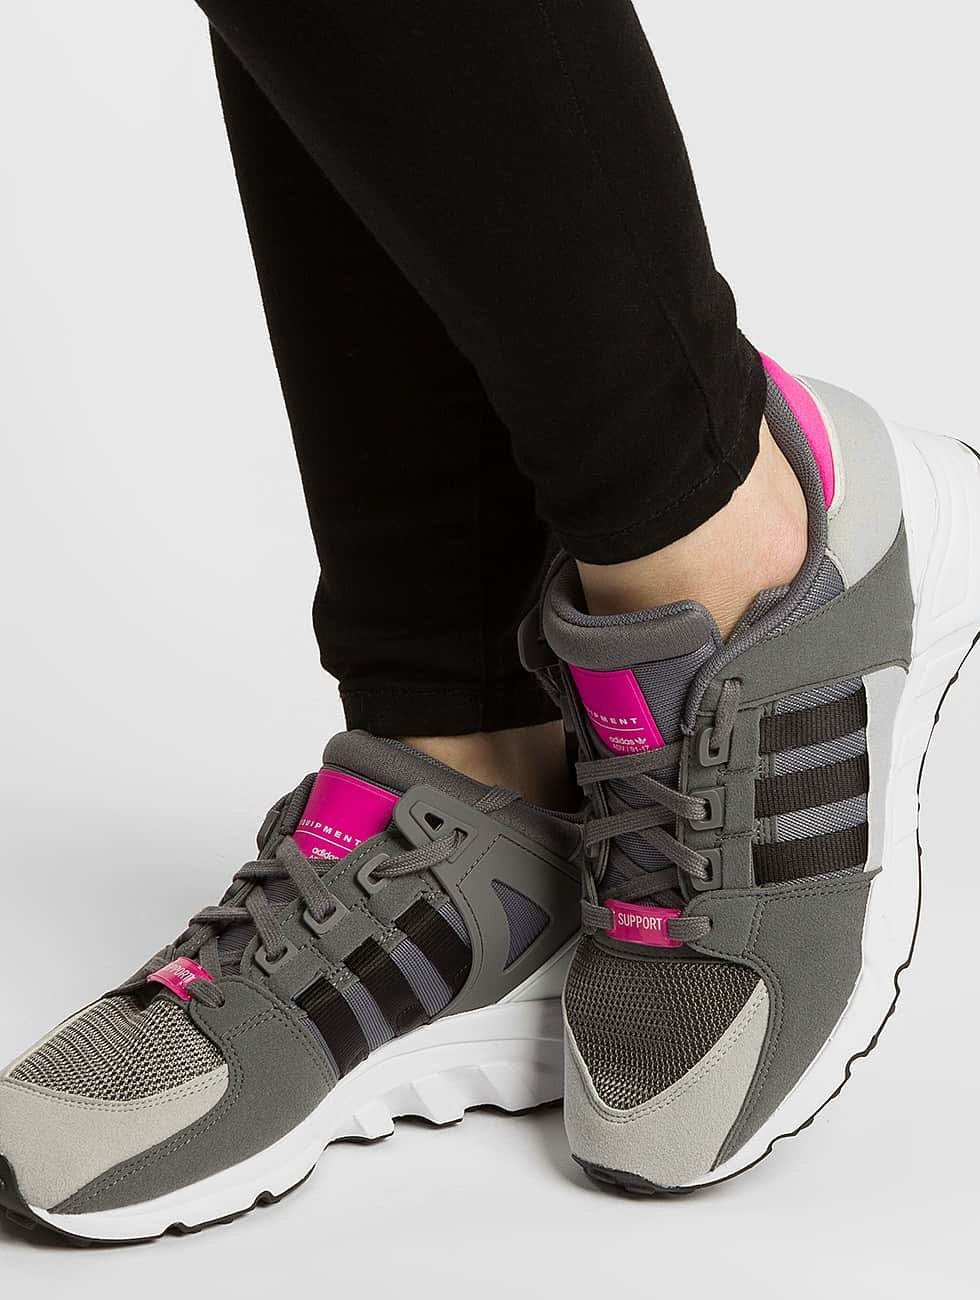 Goedkoop In Nederland Verkoop Amazon adidas originals schoen / sneaker Equipment Support J in grijs 458017 Betalen Met Visa Online Winkelaanbod Goedkoop Online Gratis Verzending Geweldige Prijs GrURo4O